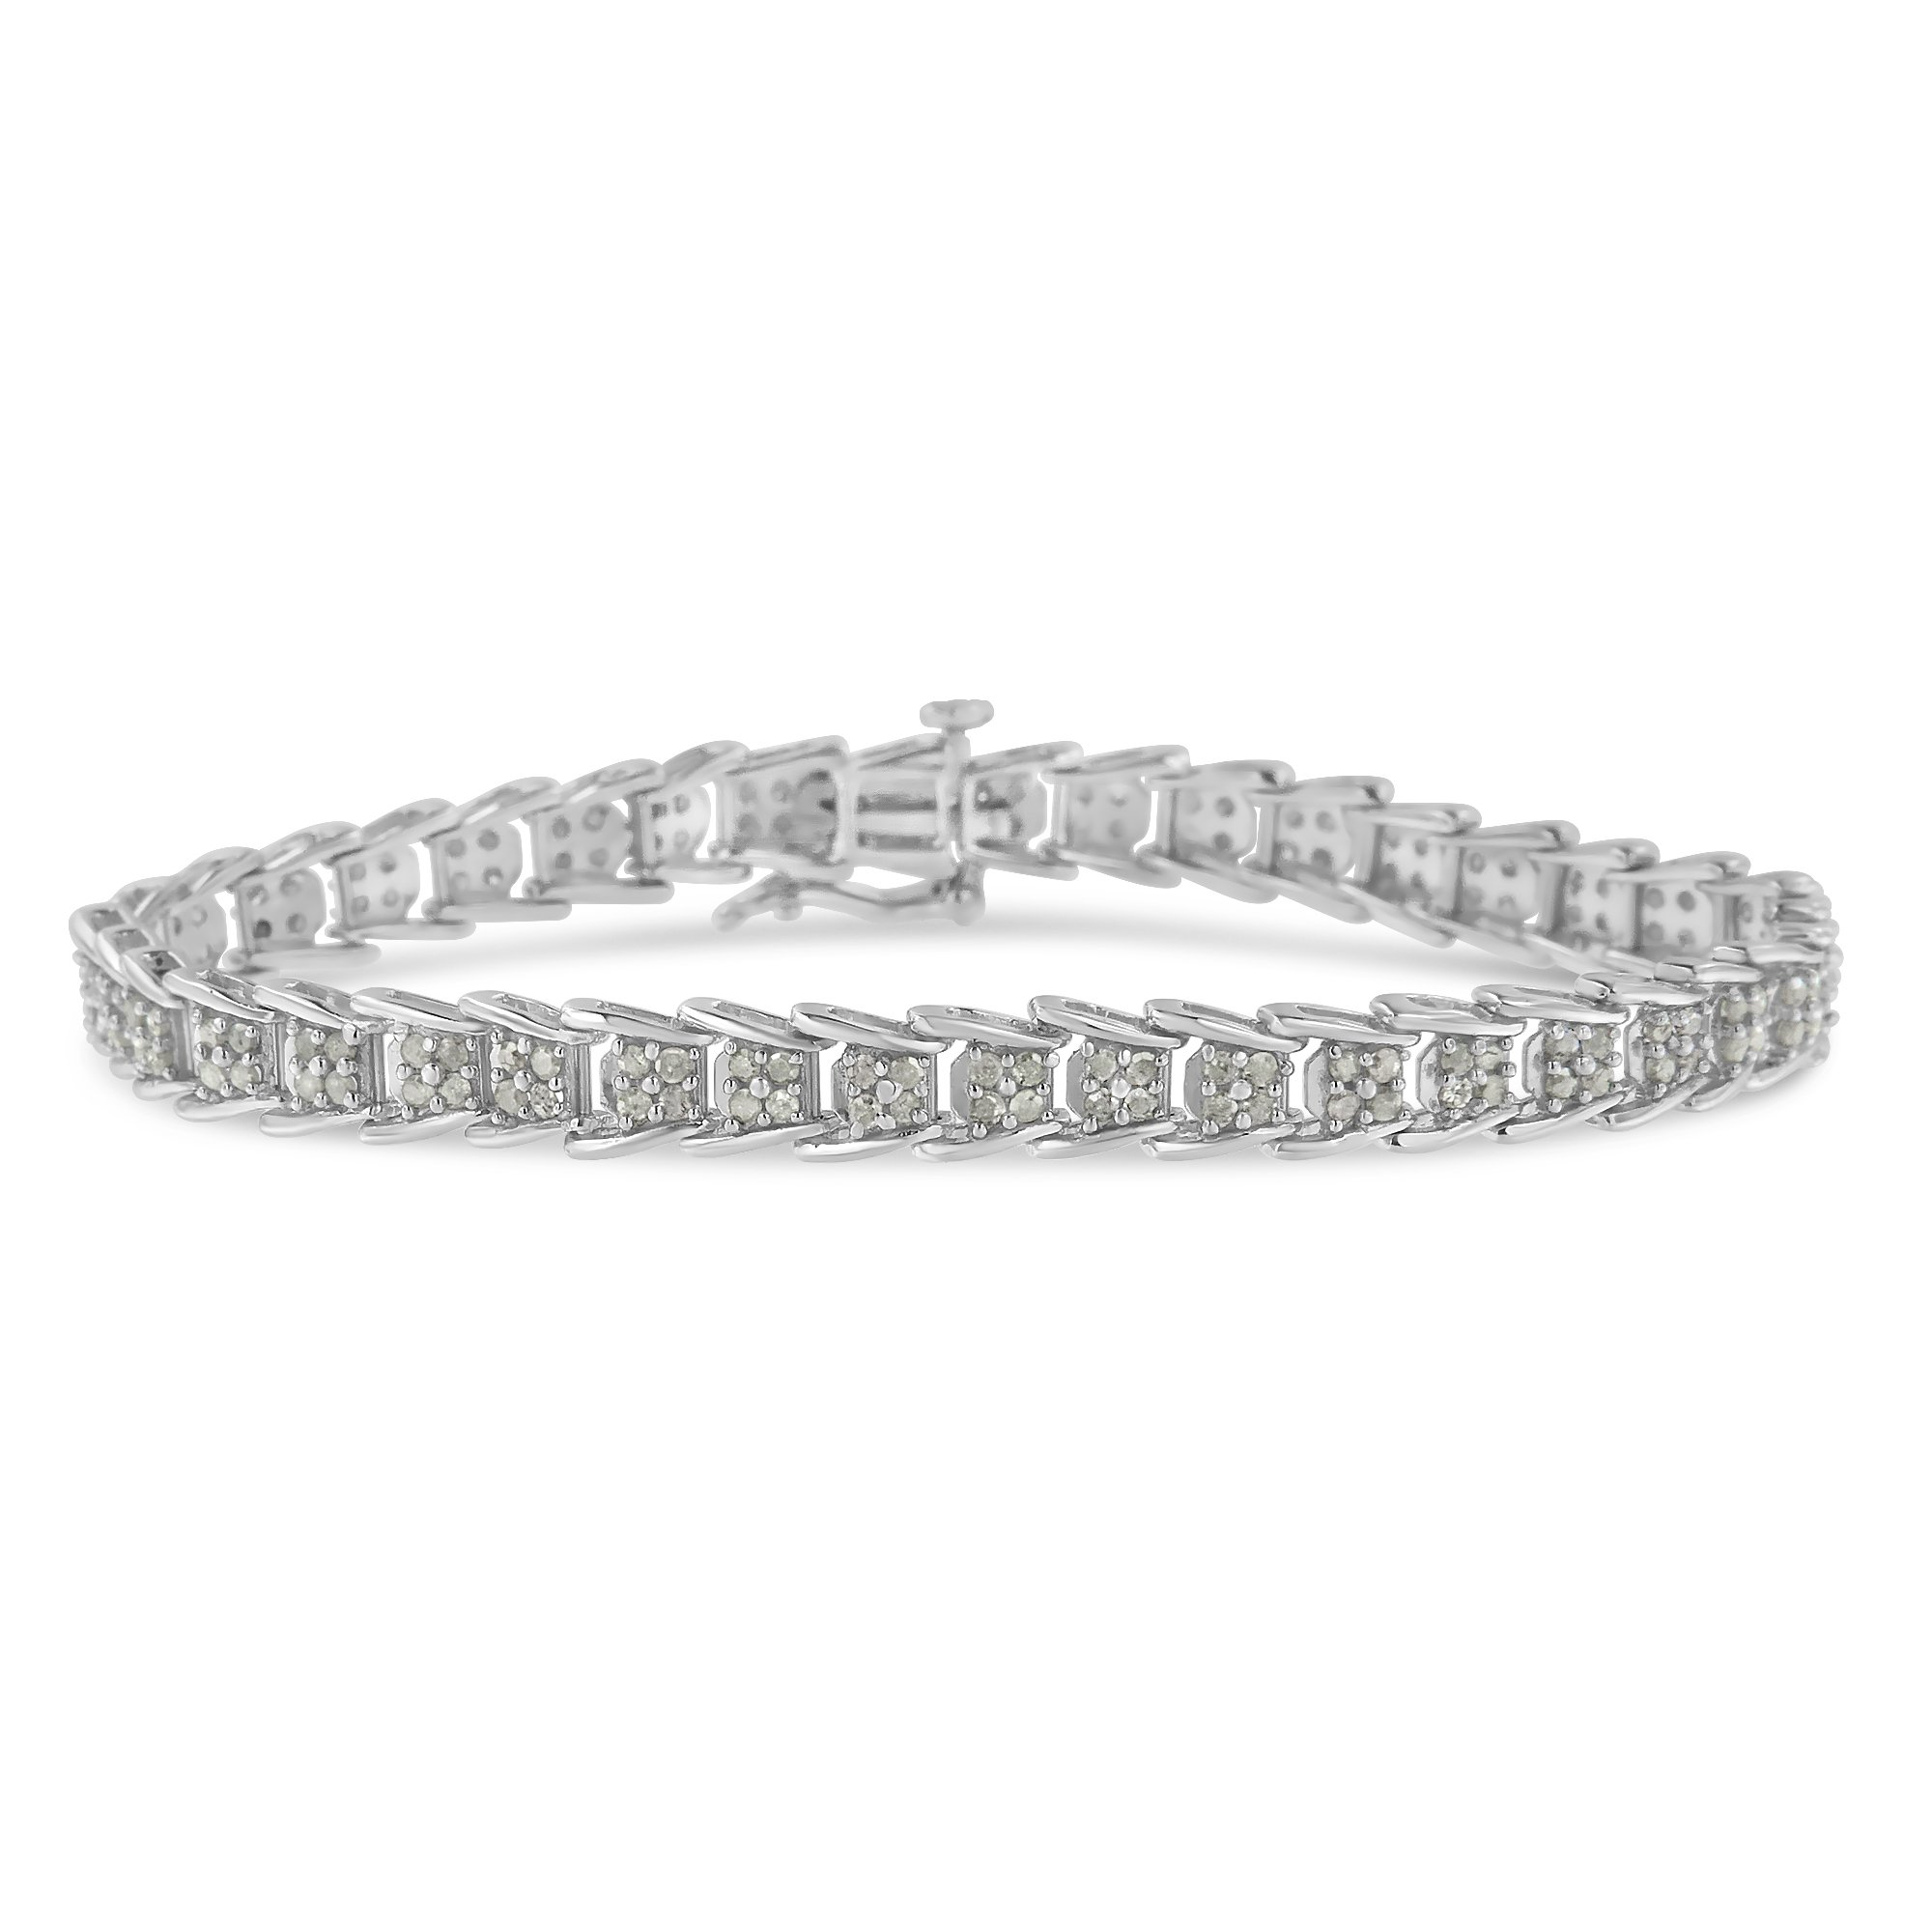 Original Classics 2.0 Ct Rose-Cut Diamond Fan-Shaped Bracelet - Flawless Style with Brilliant Shine by Original Classics